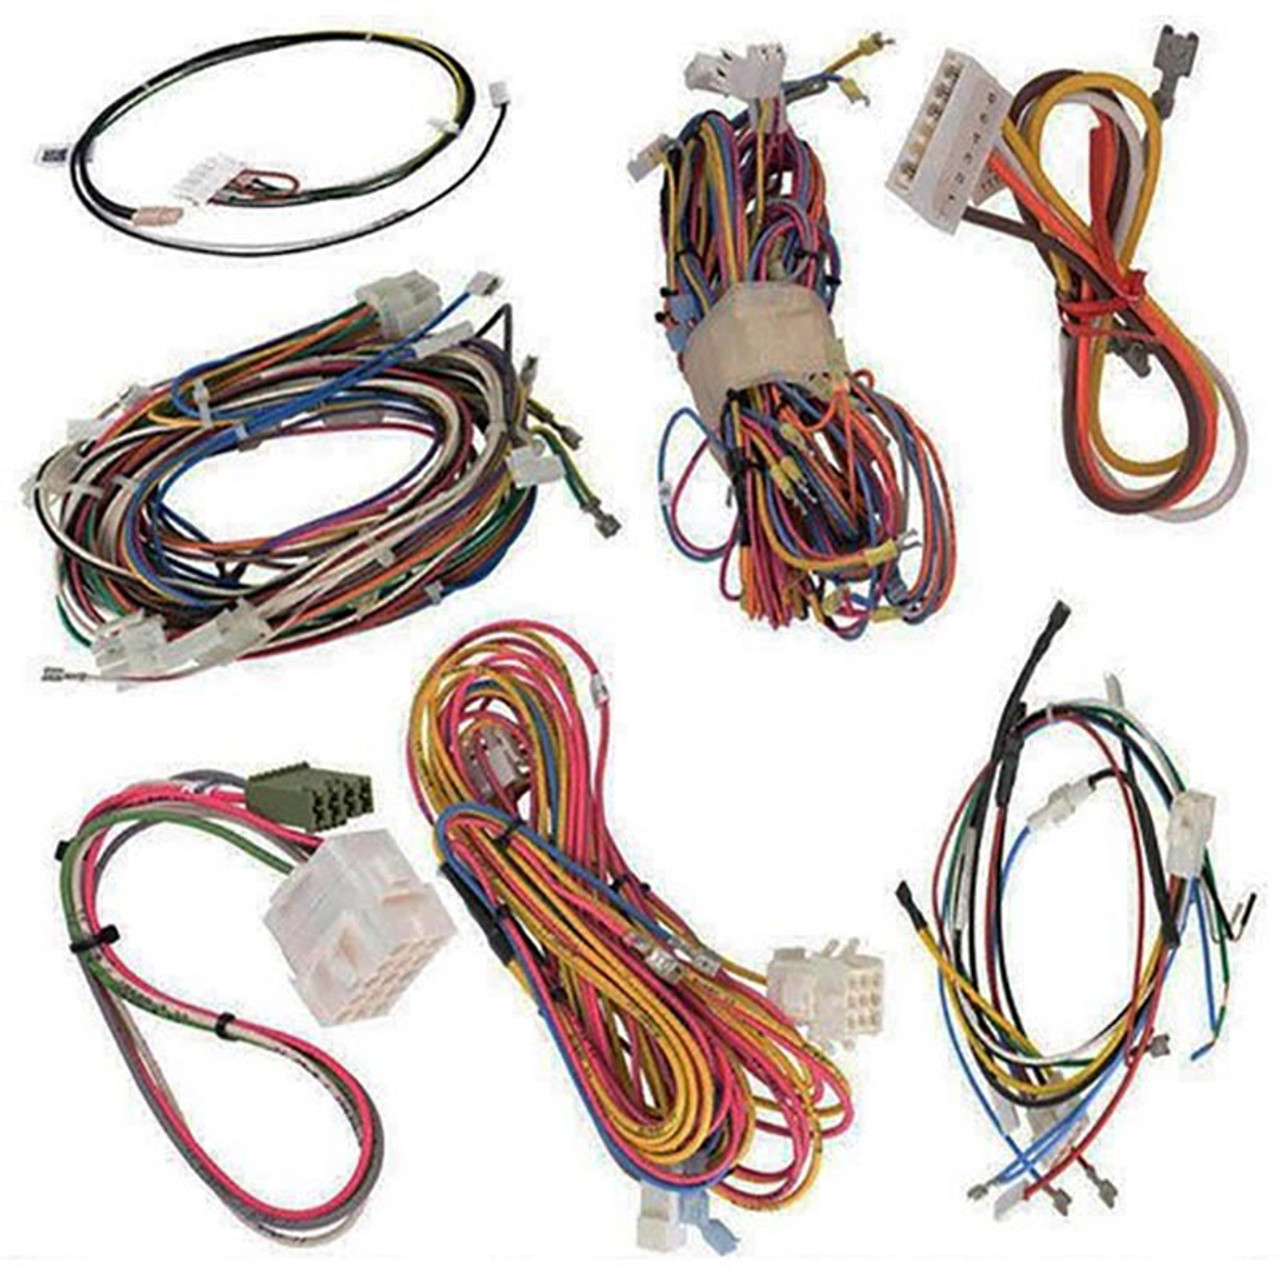 wiring harness reviews wiring diagram home centech wiring harness reviews [ 1280 x 1280 Pixel ]